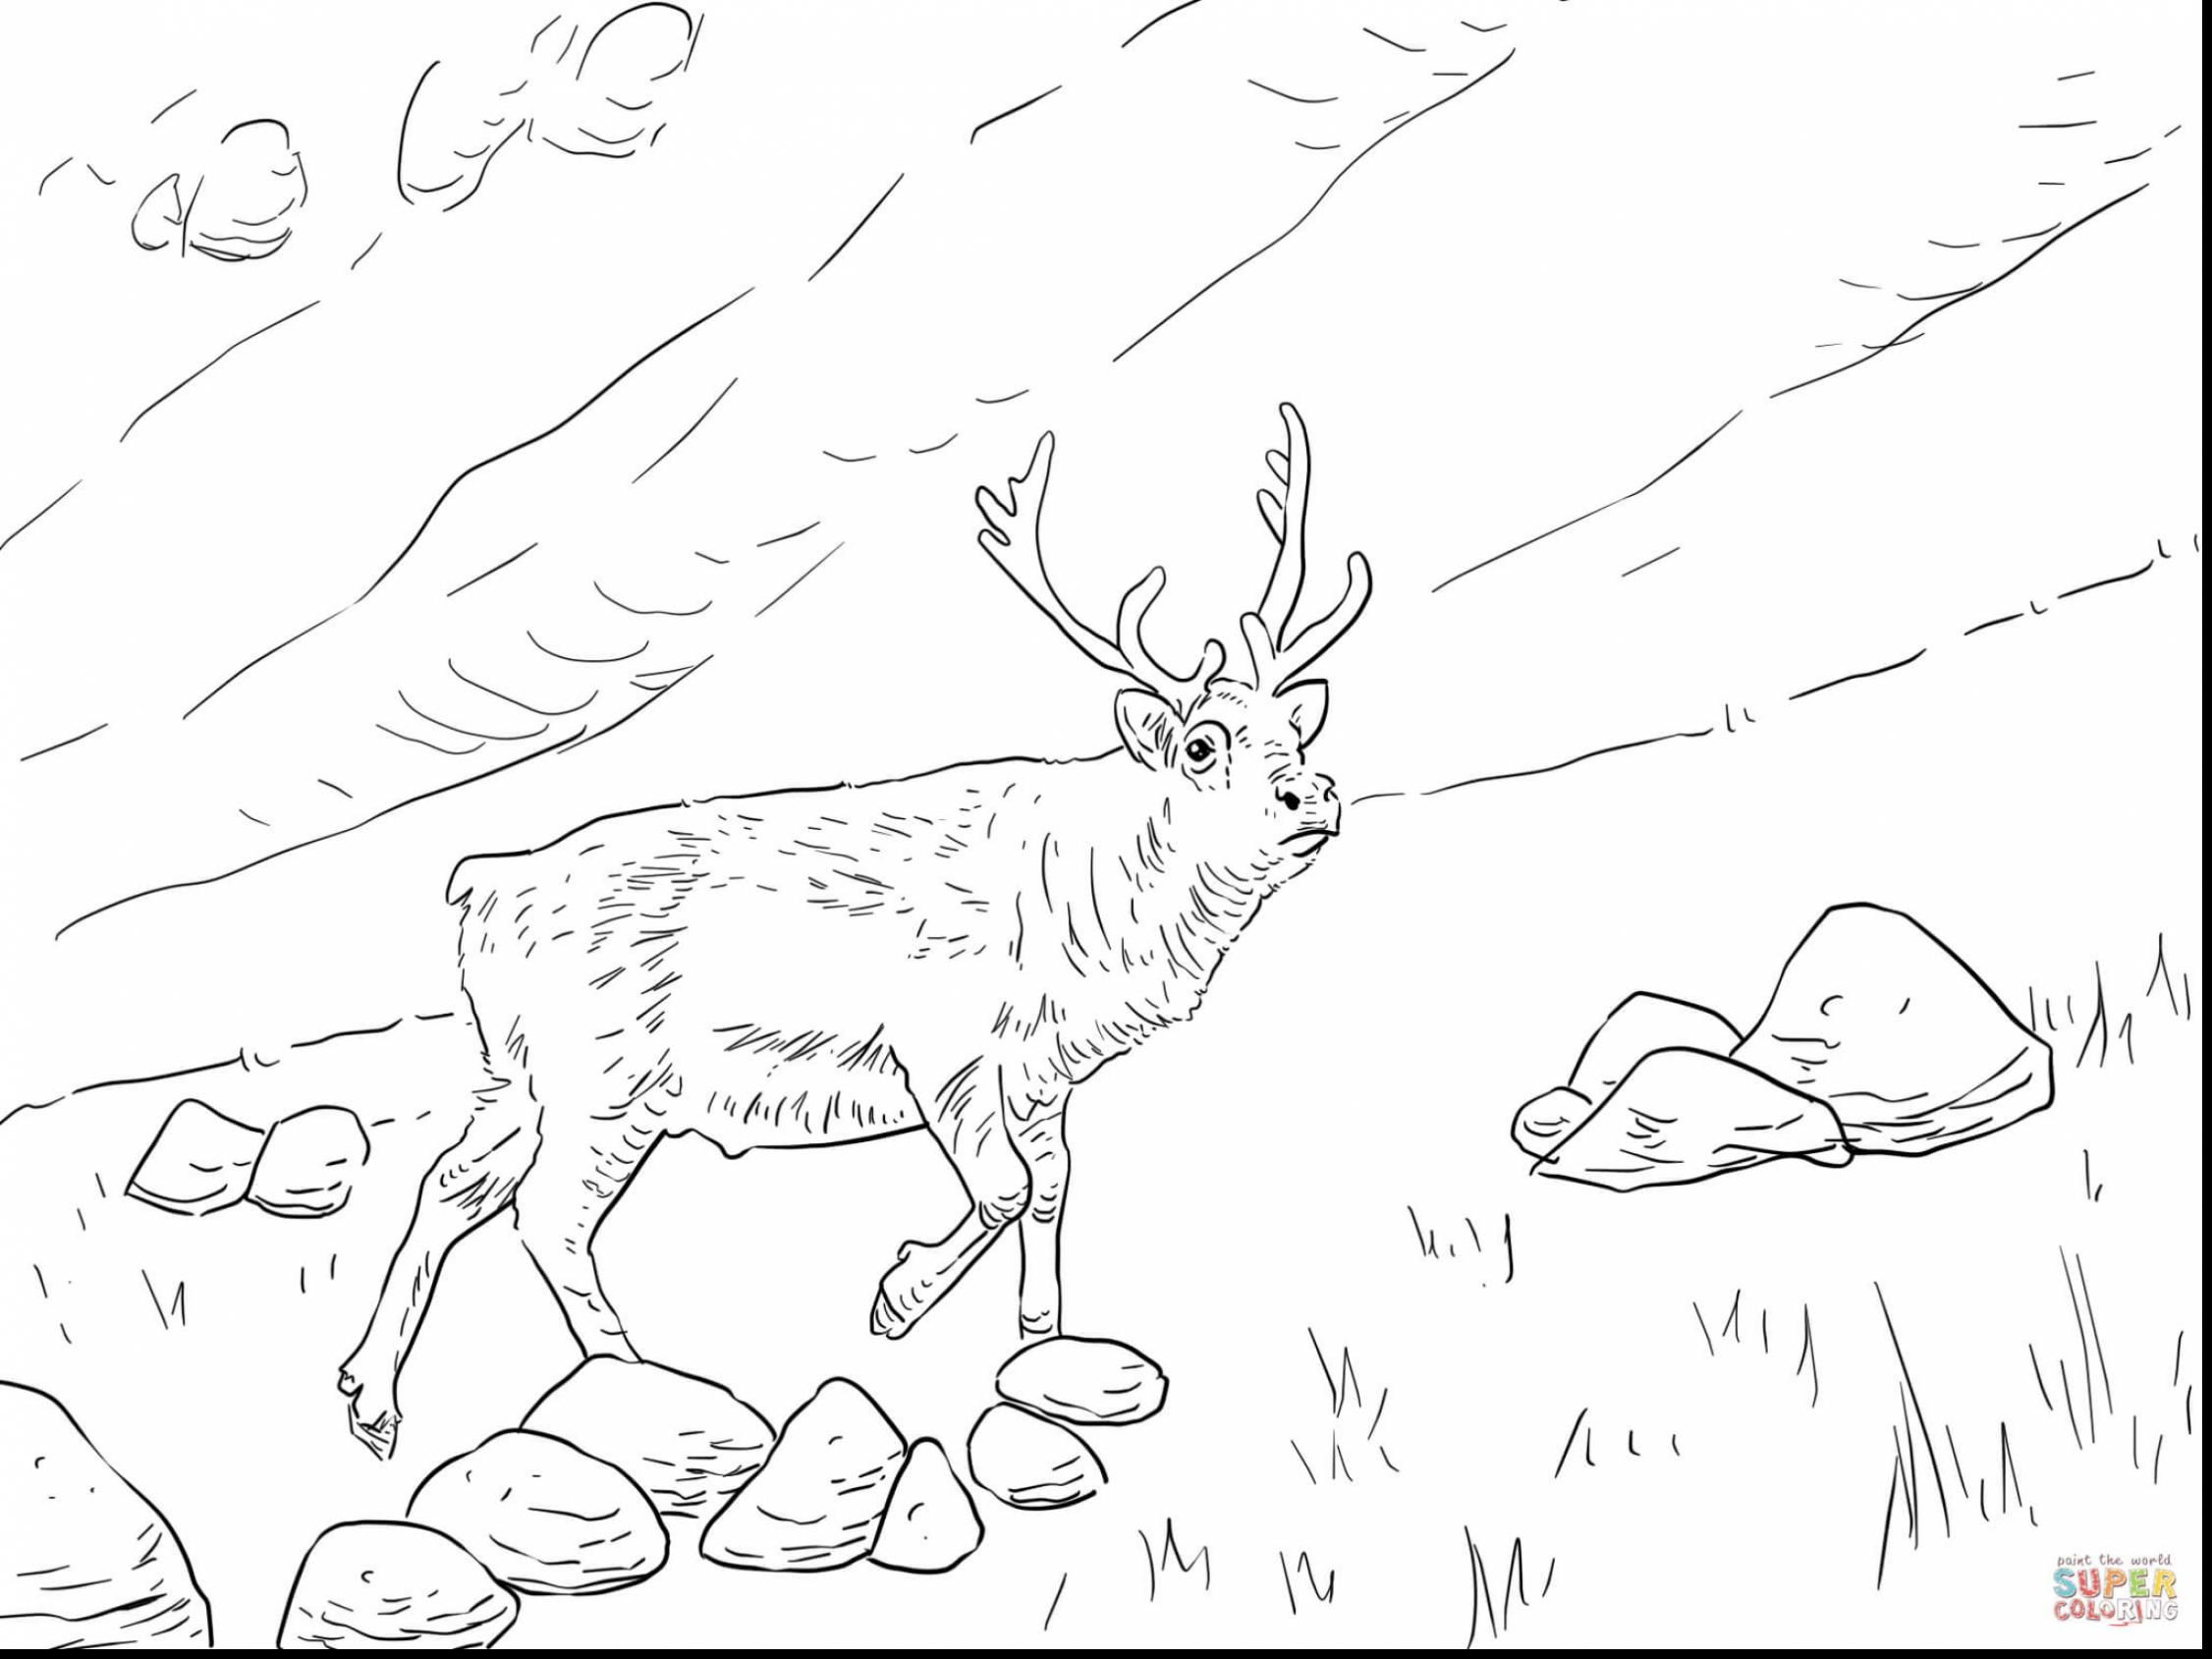 Awesome Reindeer Printable Coloring Pages With Reindeer Coloring Page And Reindeer Antlers Coloring Pag Animal Coloring Pages Reindeer Printable Coloring Pages